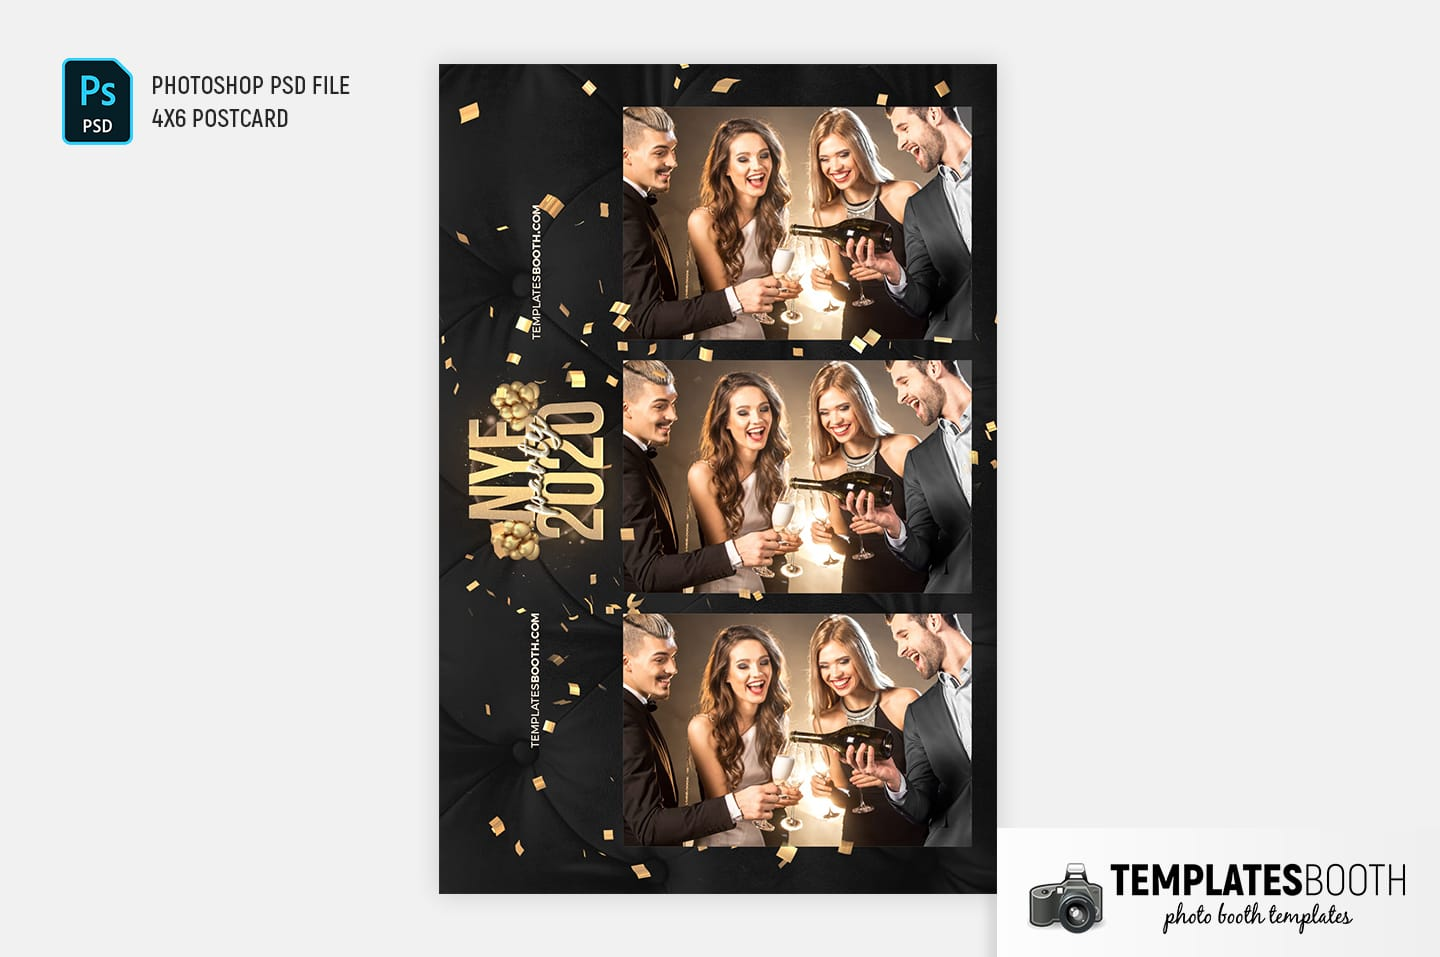 New Year's Eve Photo Booth Template (4x6 postcard)